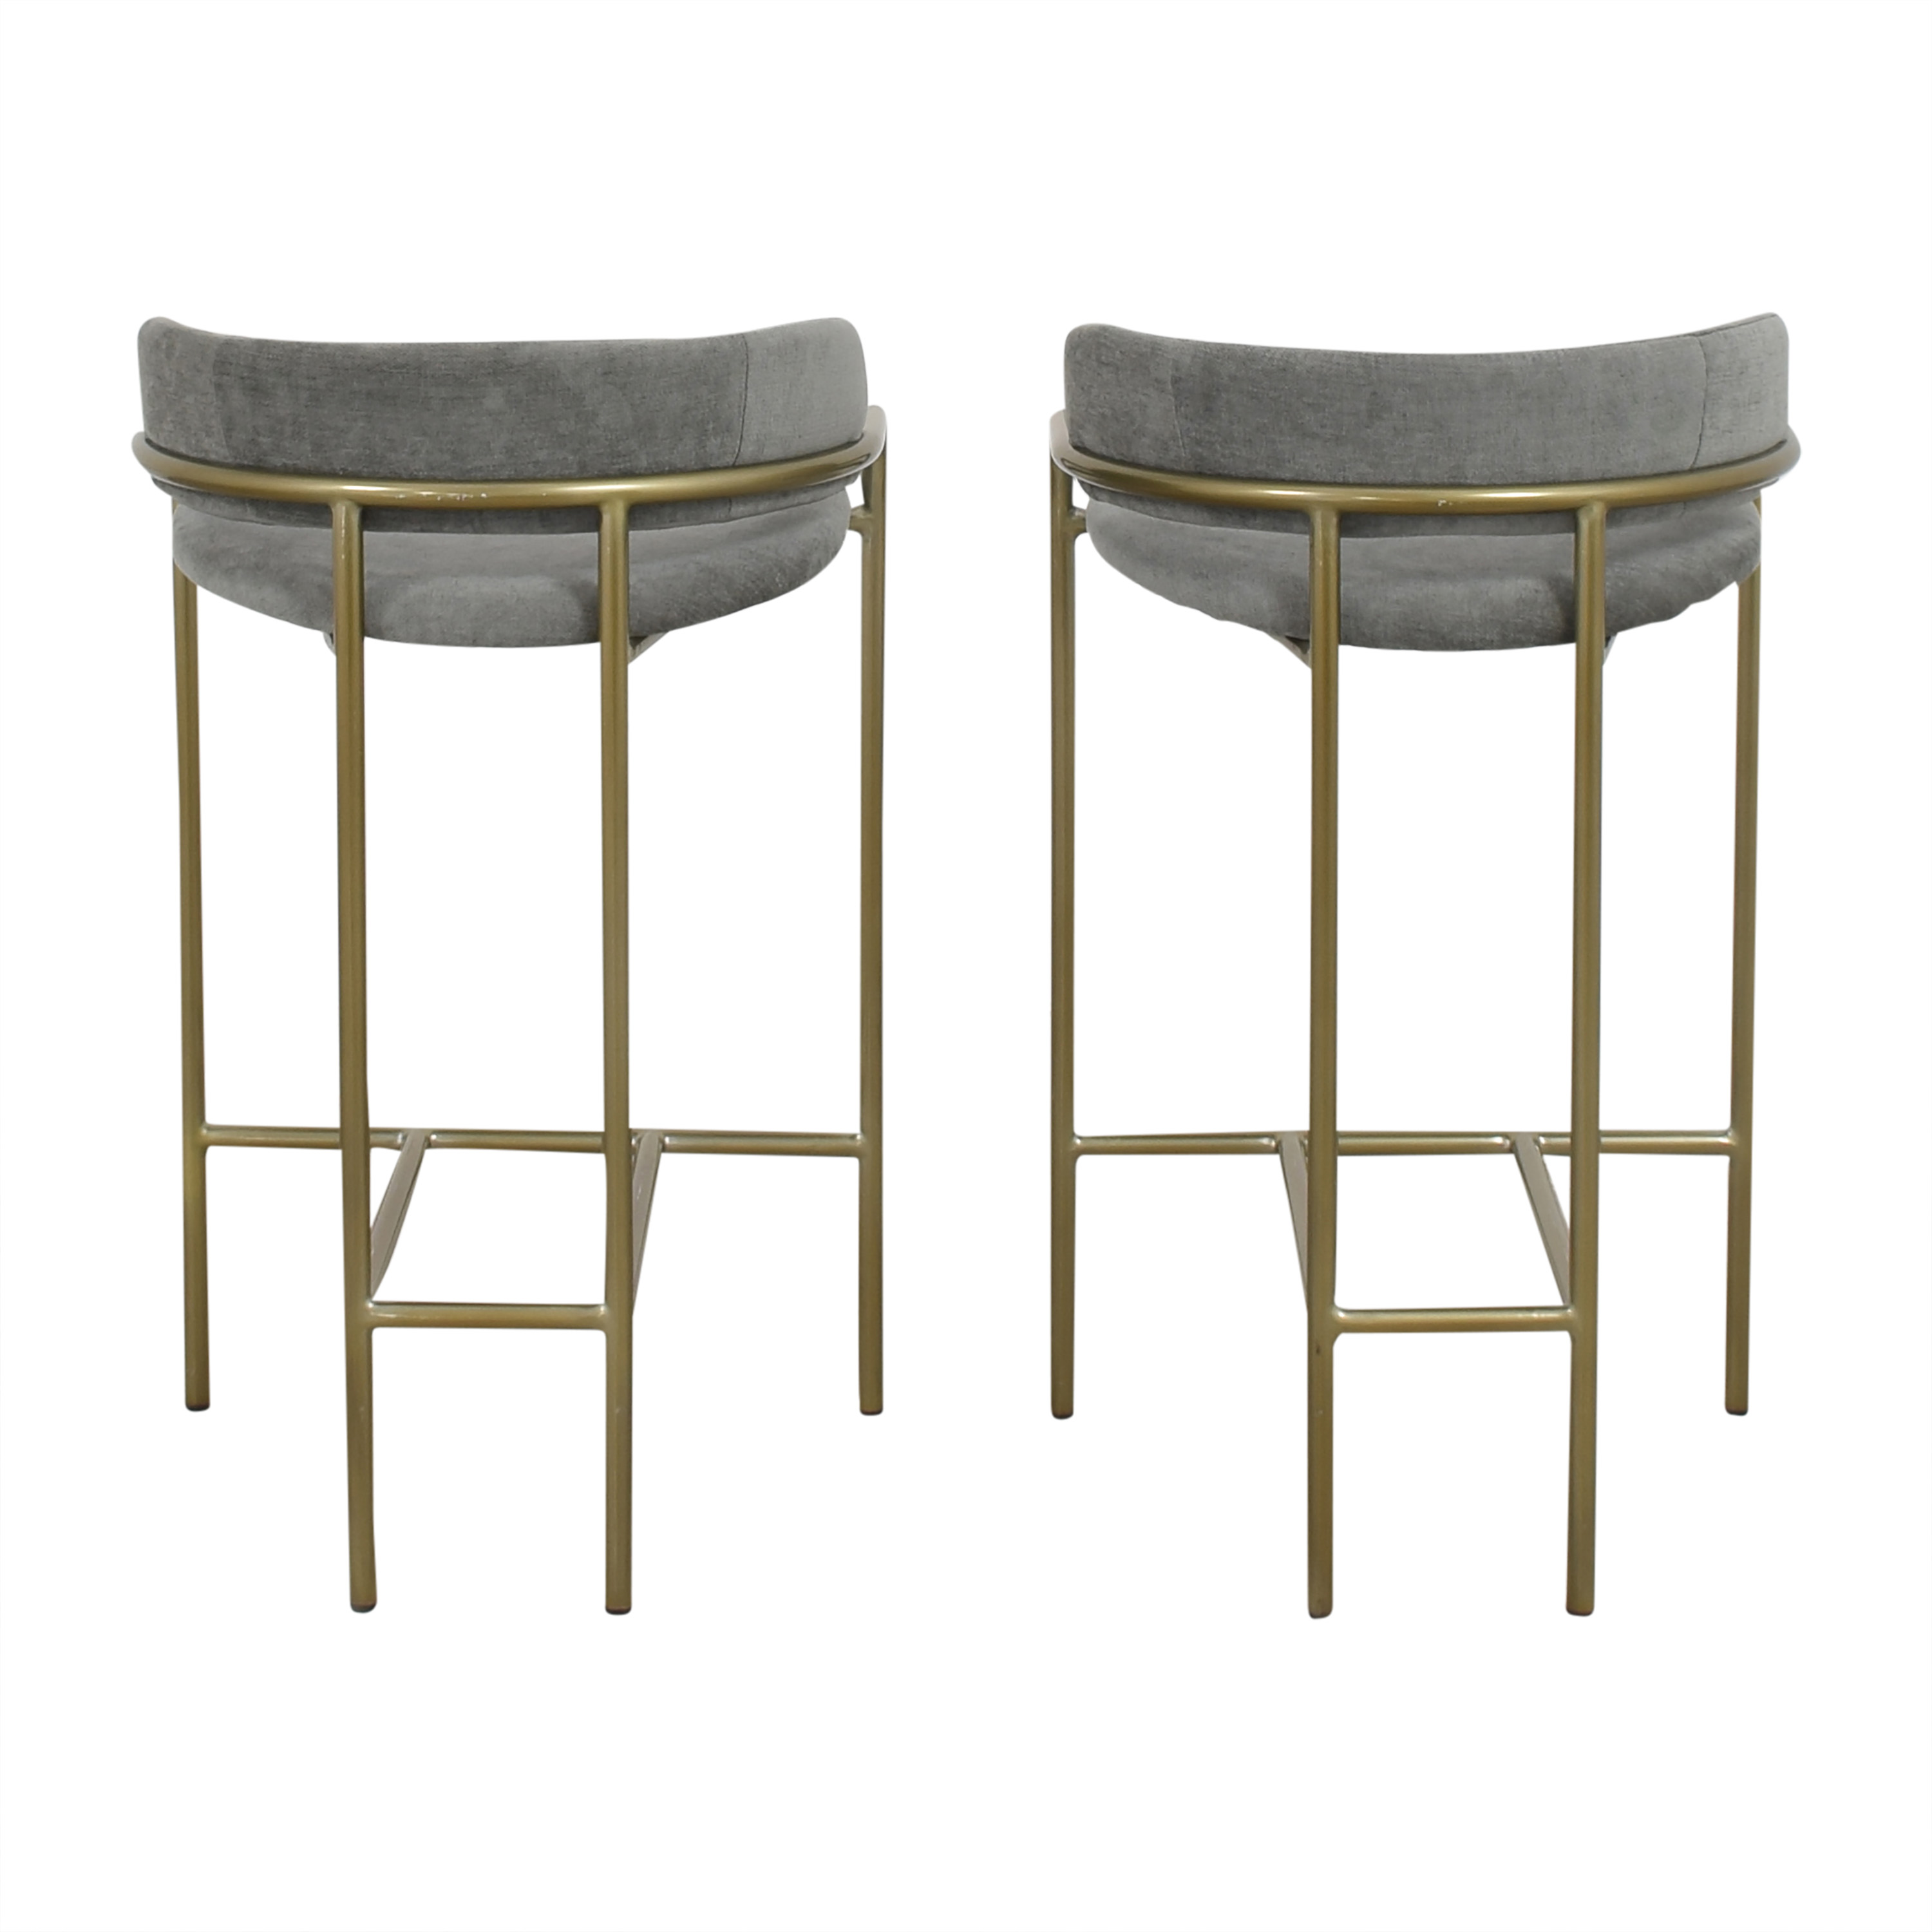 20 OFF   West Elm West Elm Lenox Counter Stools / Chairs